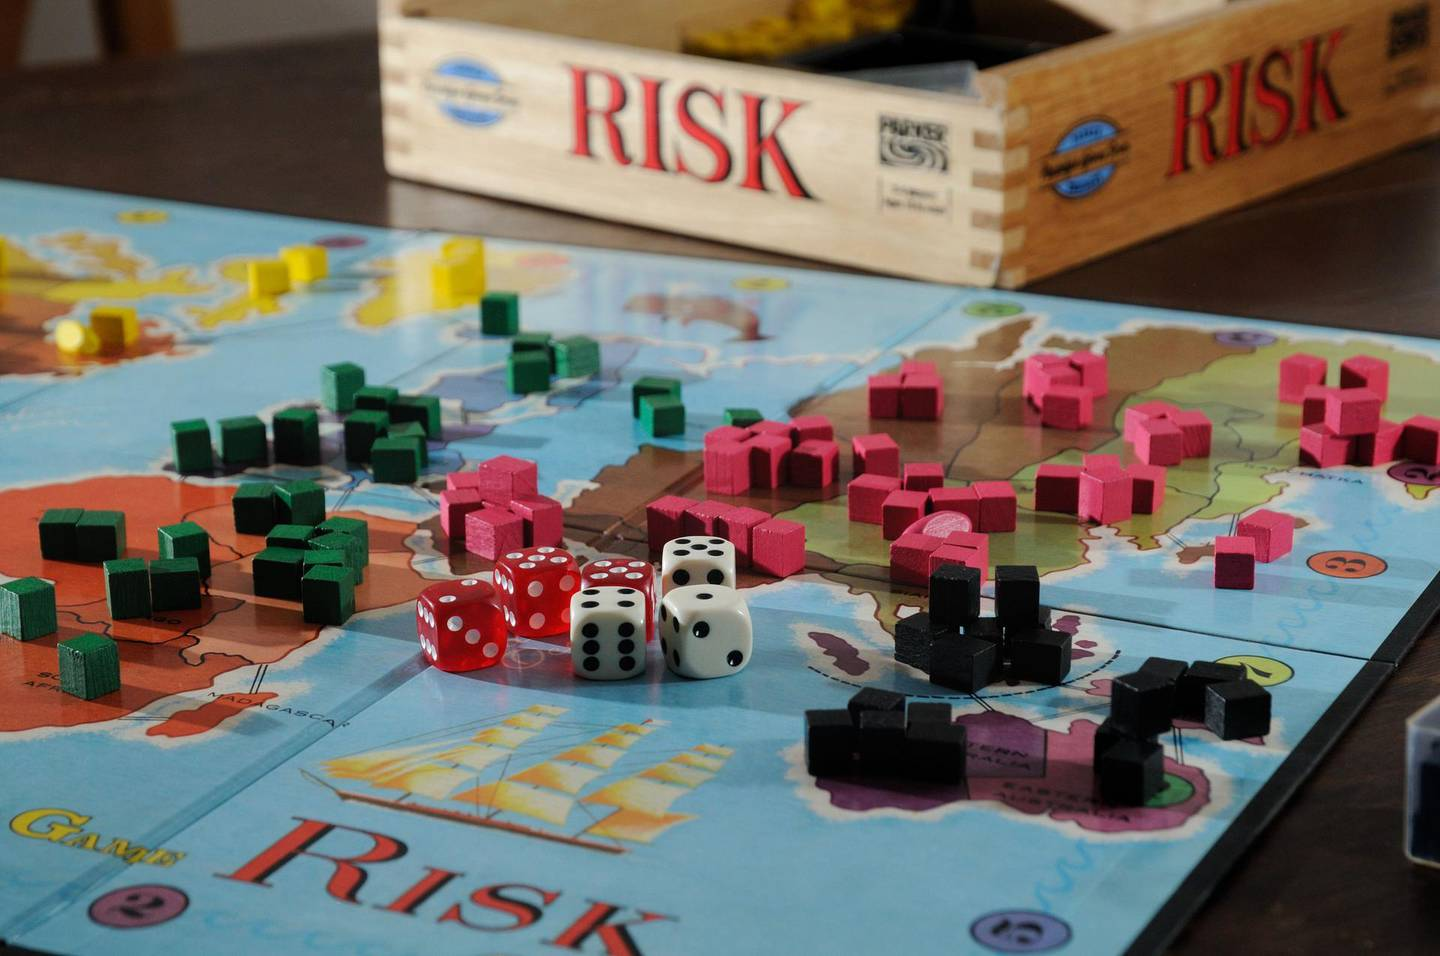 Mandatory Credit: Photo by Andy Drysdale/Shutterstock (1548089p) Risk board game of global domination, warfare and strategy Various - 2012